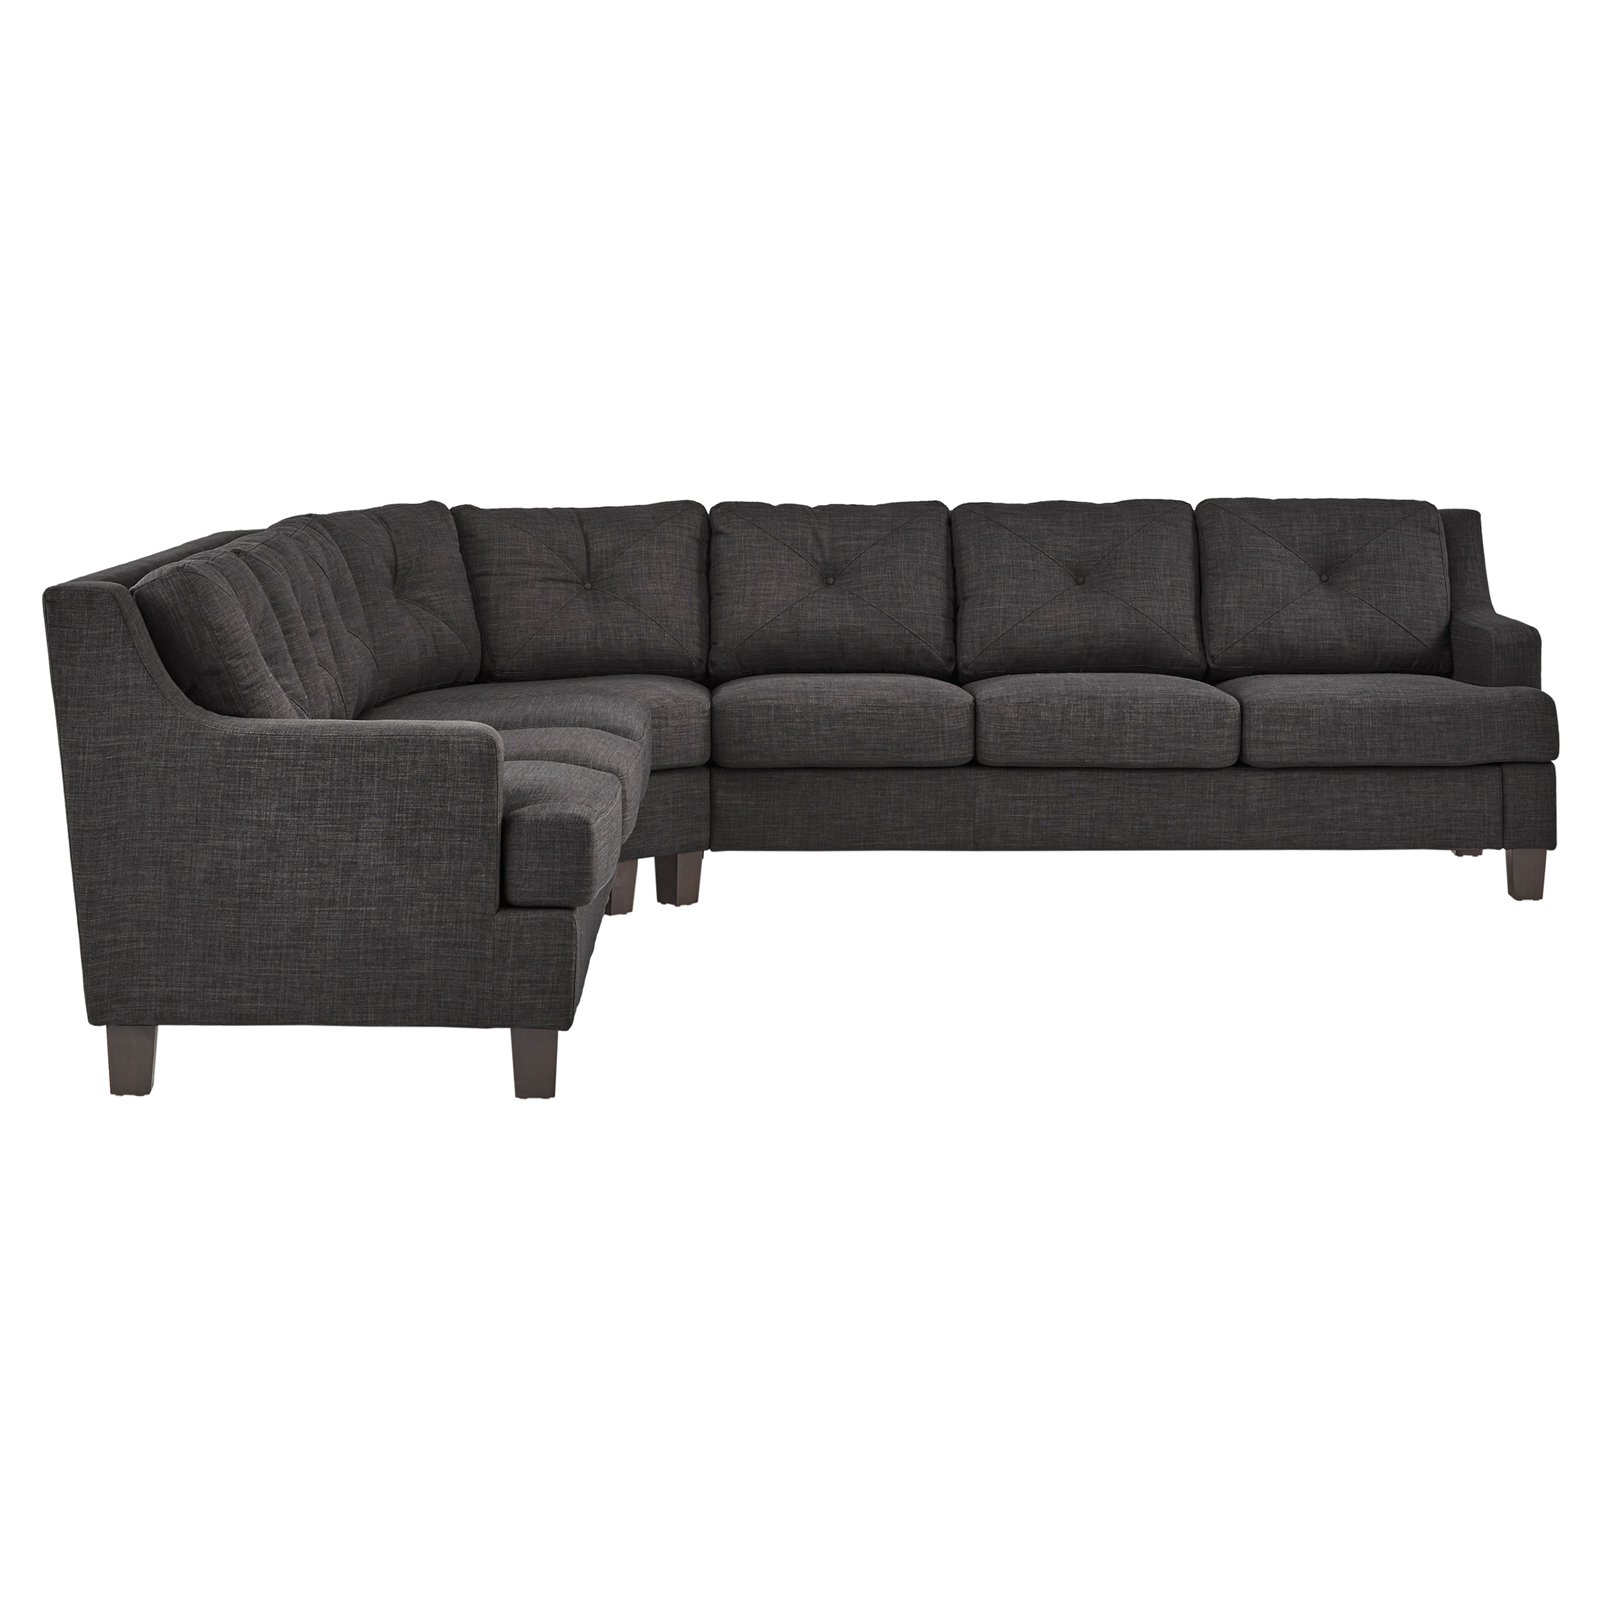 Weston Home Breame Removable Cushion Long 5 Seat L-Shaped Sectional Sofa